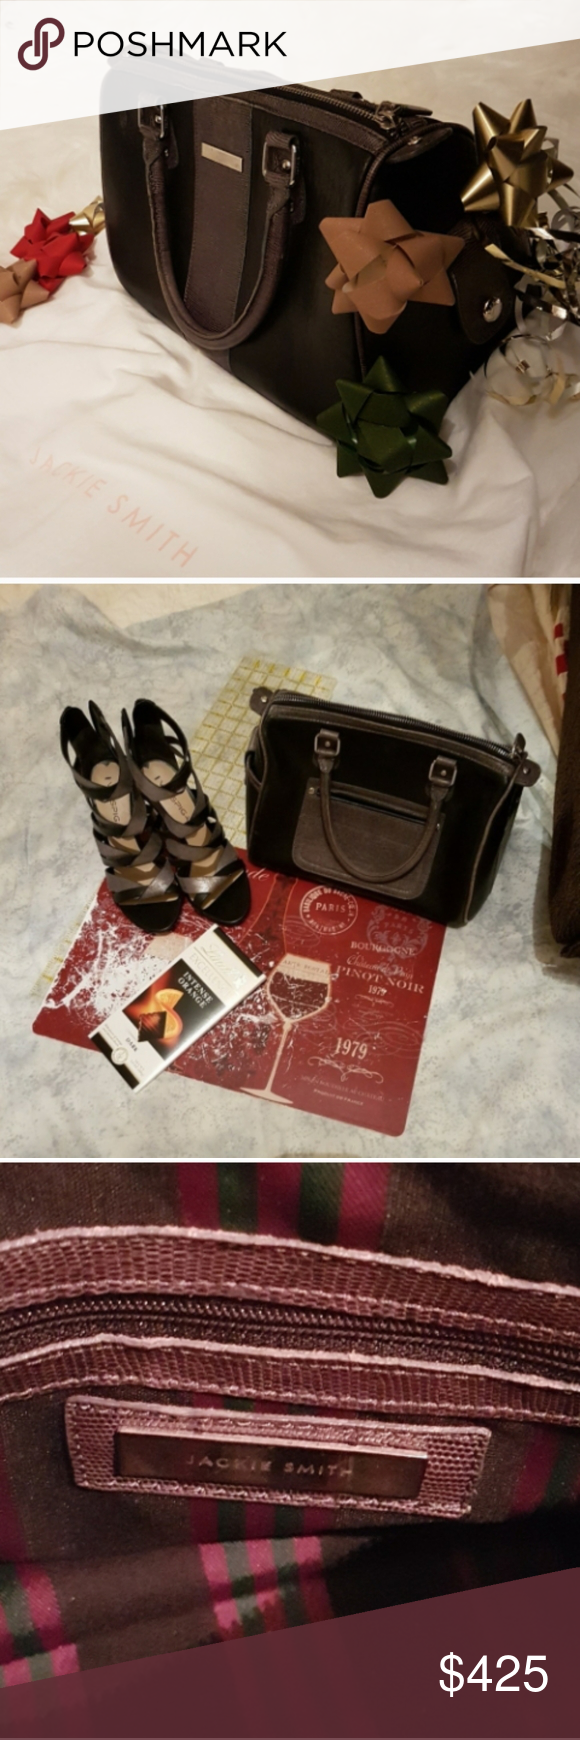 Rare Jackie Smith From Argentina Leather Bag In 2020 Leather Purses Argentina Leather Leather